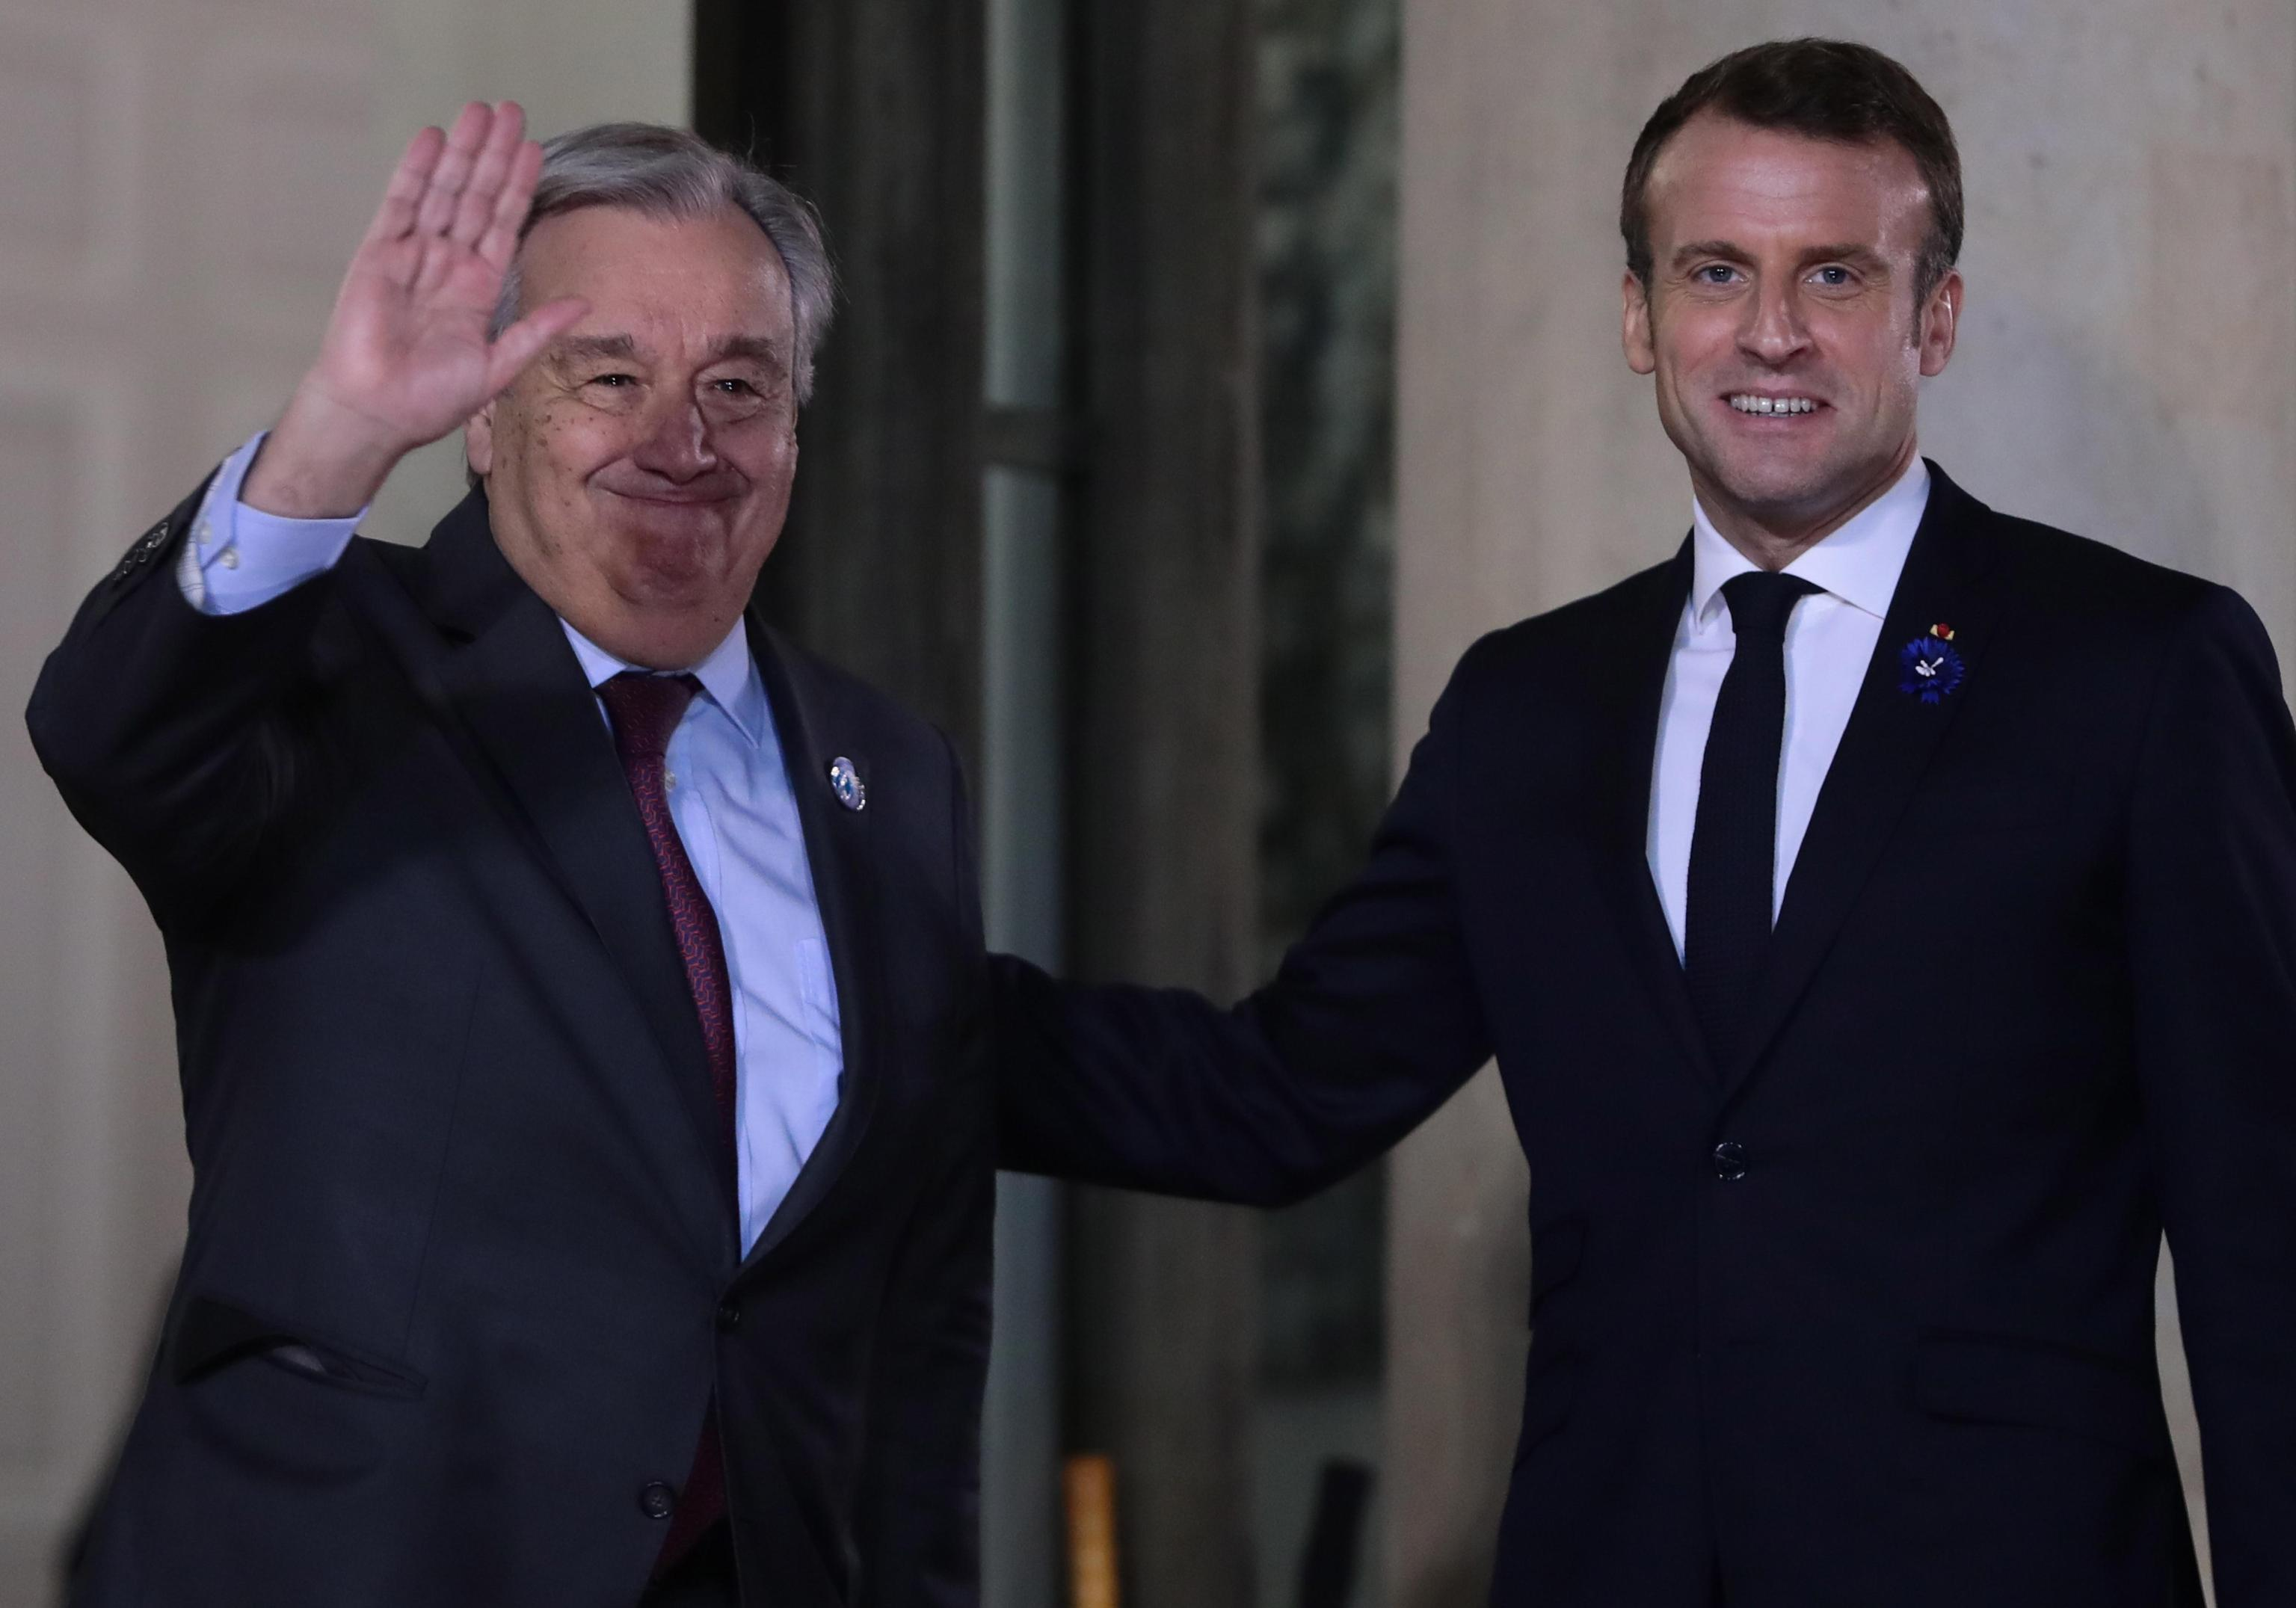 epa07989128 President Emmanuel Macron (R) greets UN Secretary-General Antonio Guterres (L) for a dinner with participants of the Paris Peace Forum, at the Elysee Palace, in Paris, France, 11 November 2019.  EPA/CHRISTOPHE PETIT TESSON